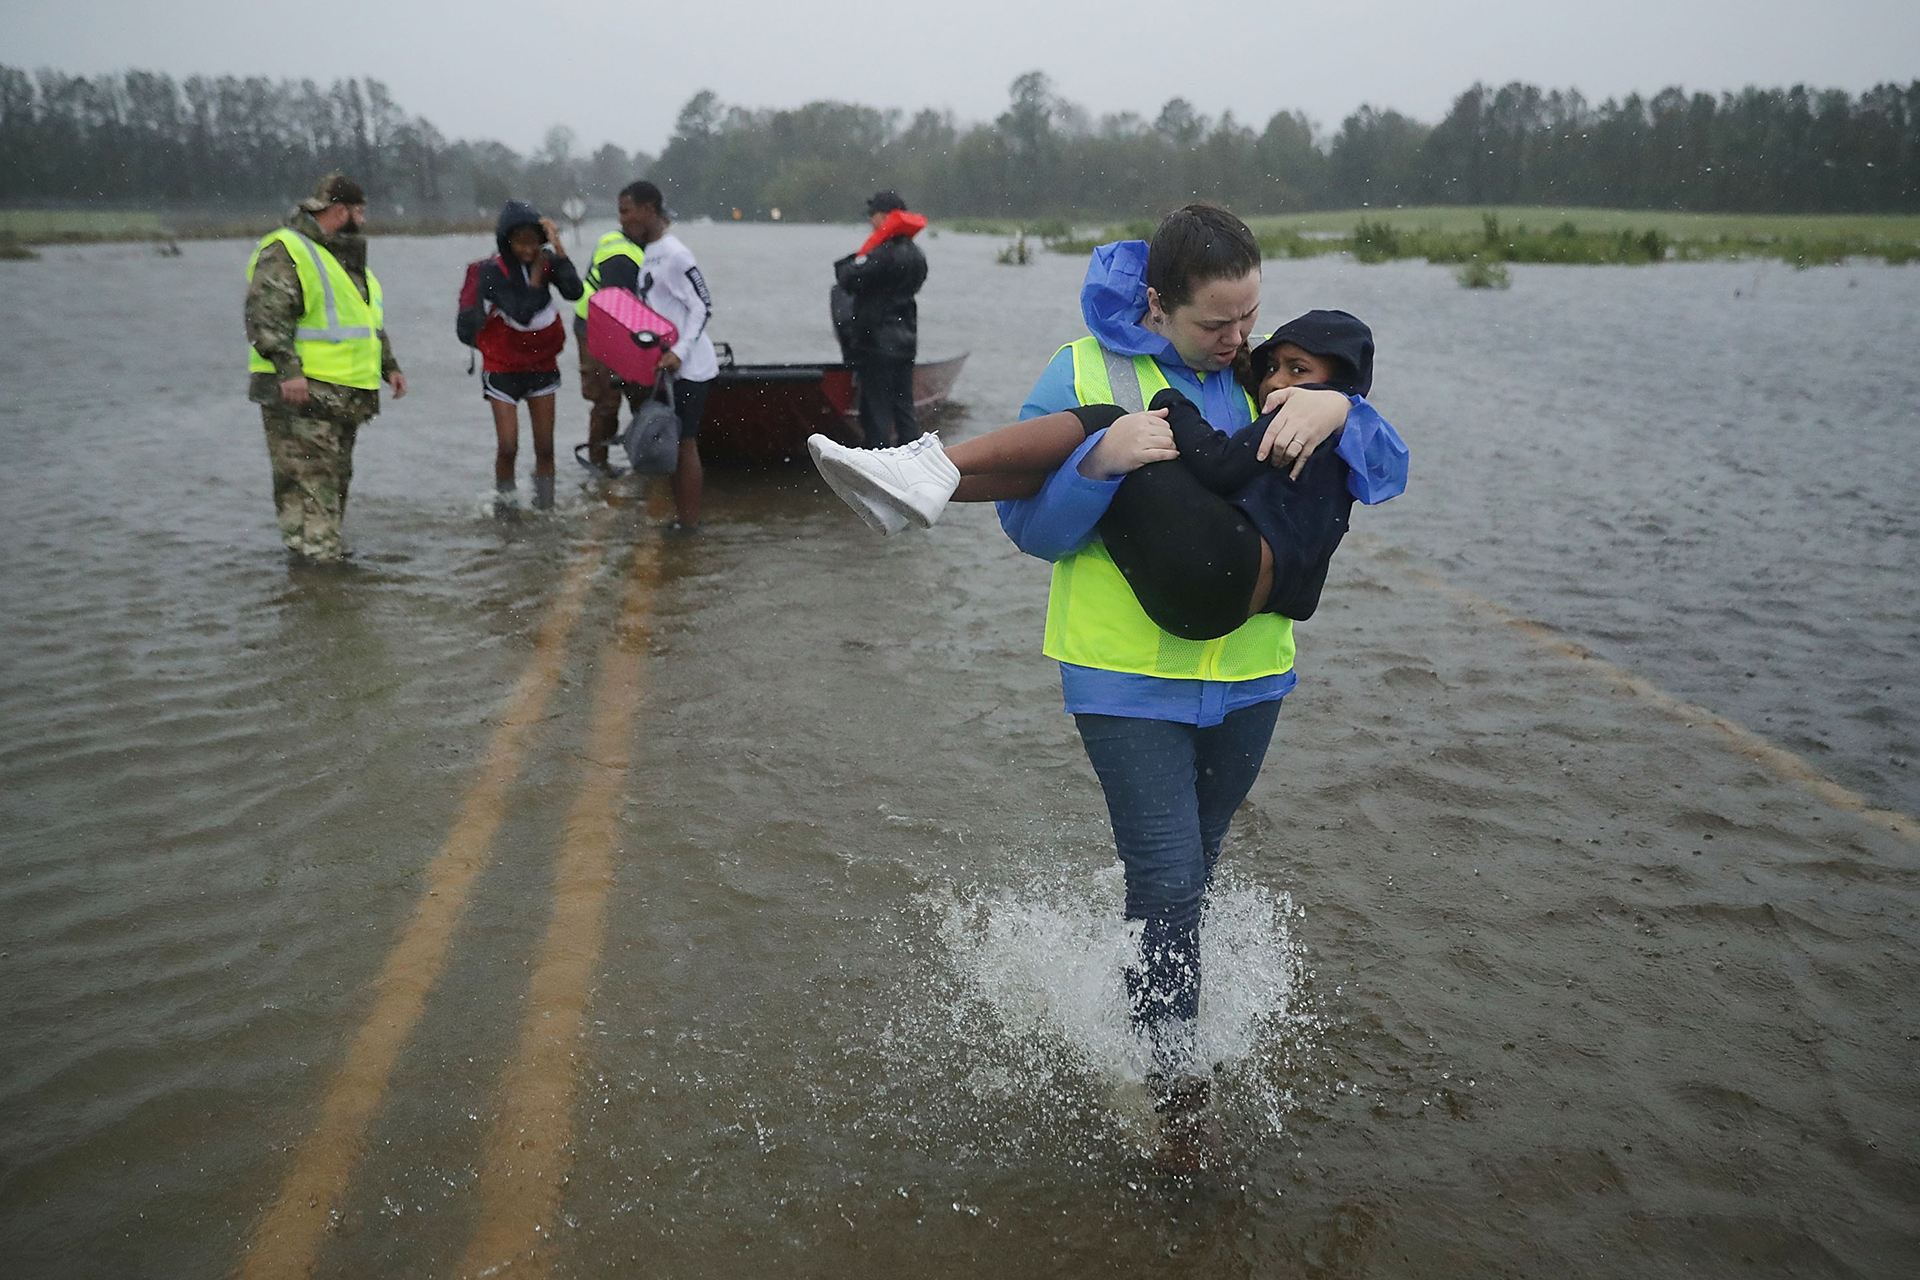 Pictures: Hurricane Florence slams into Carolinas